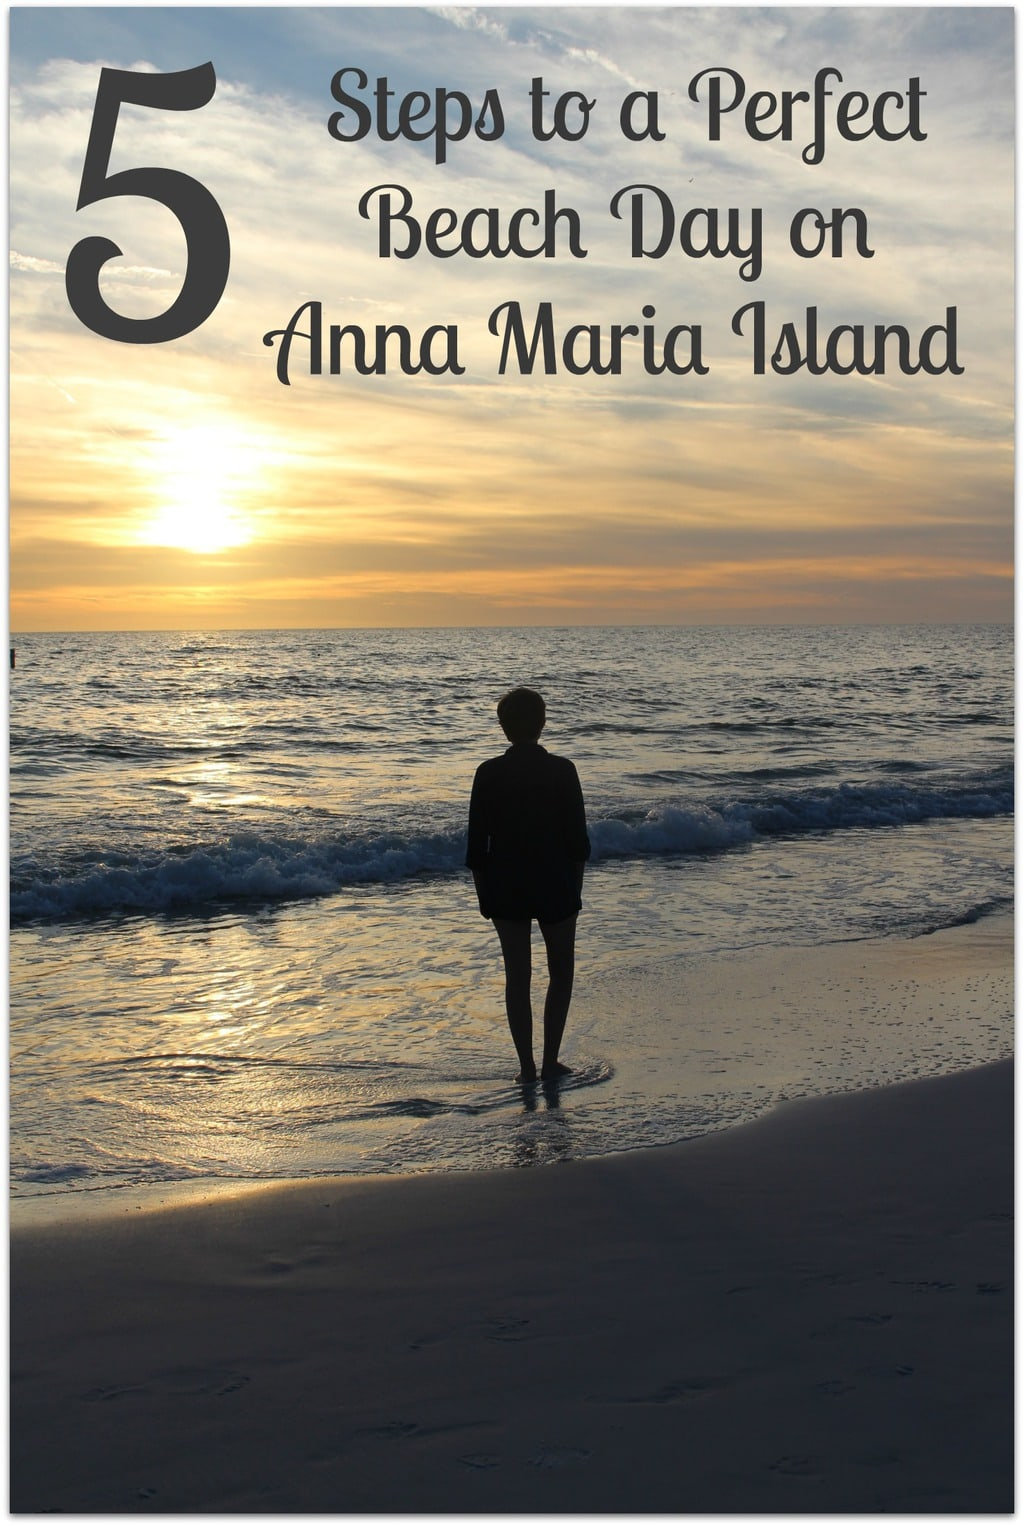 Because I want you to have a perfect beach day on Anna Maria Island, I thought it would be helpful to give you some ideas of what to expect and what to take with you. I hope this short list will make your visit to the beach more enjoyable.